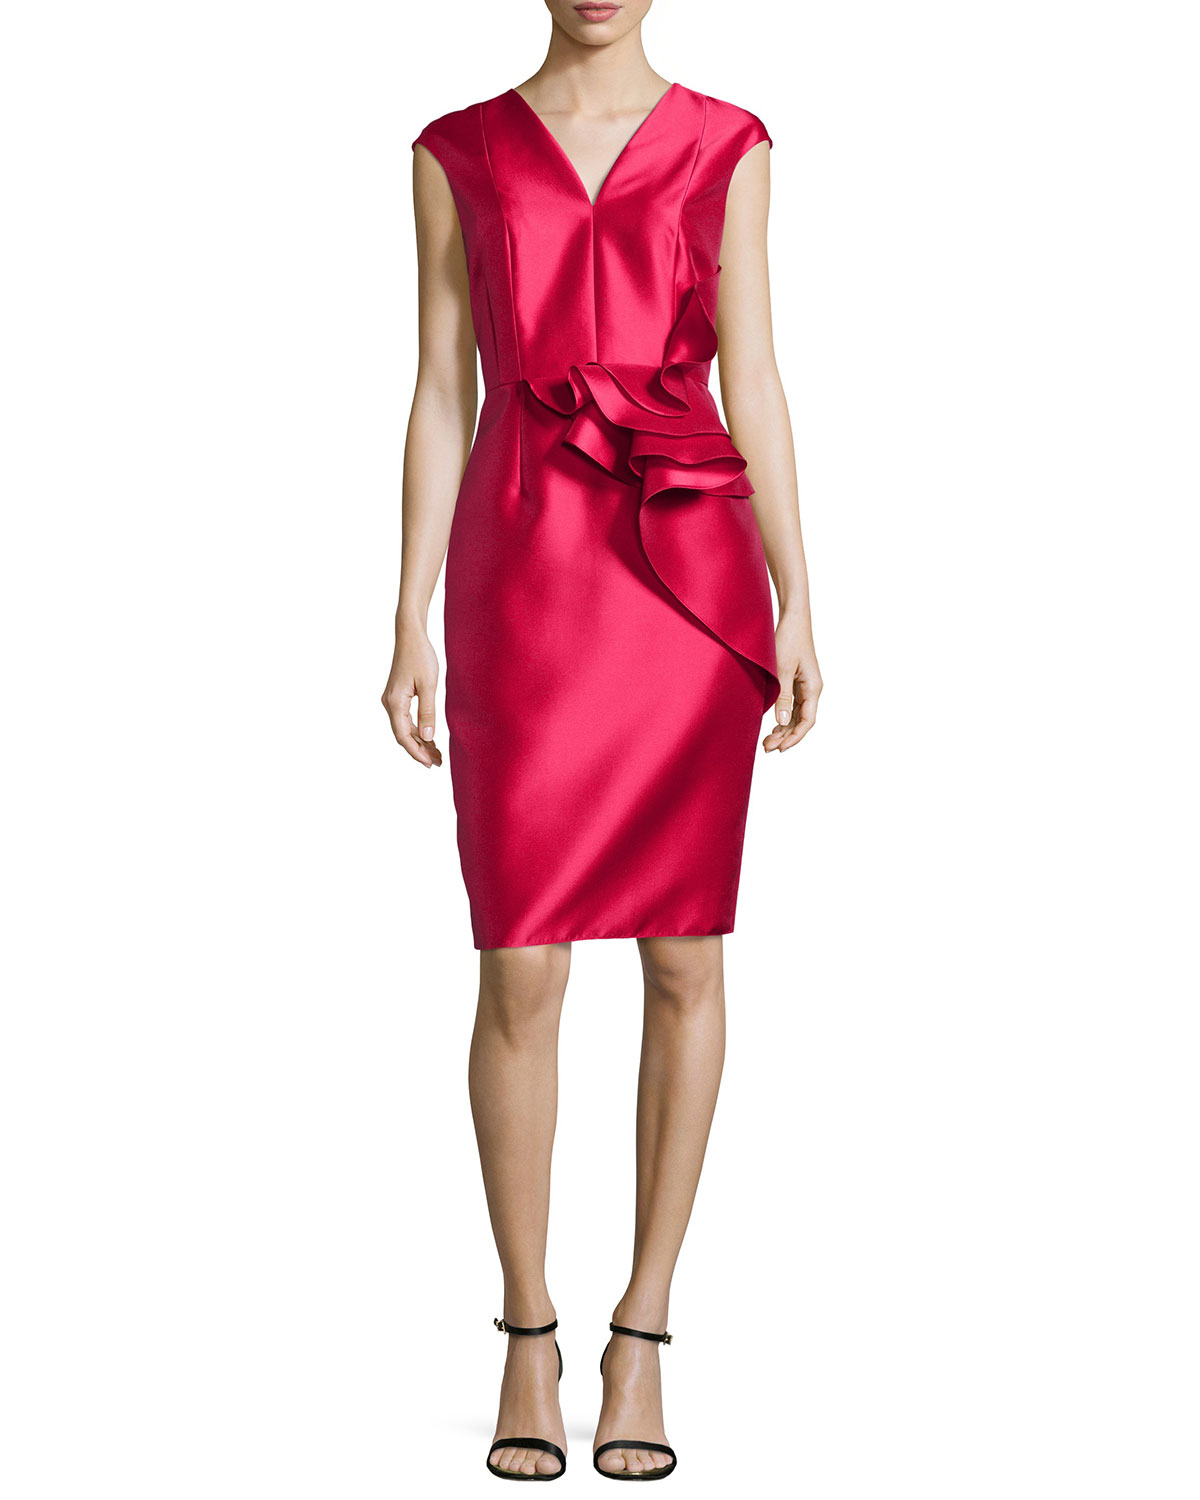 Carmen Marc Valvo Cocktail Dresses 20